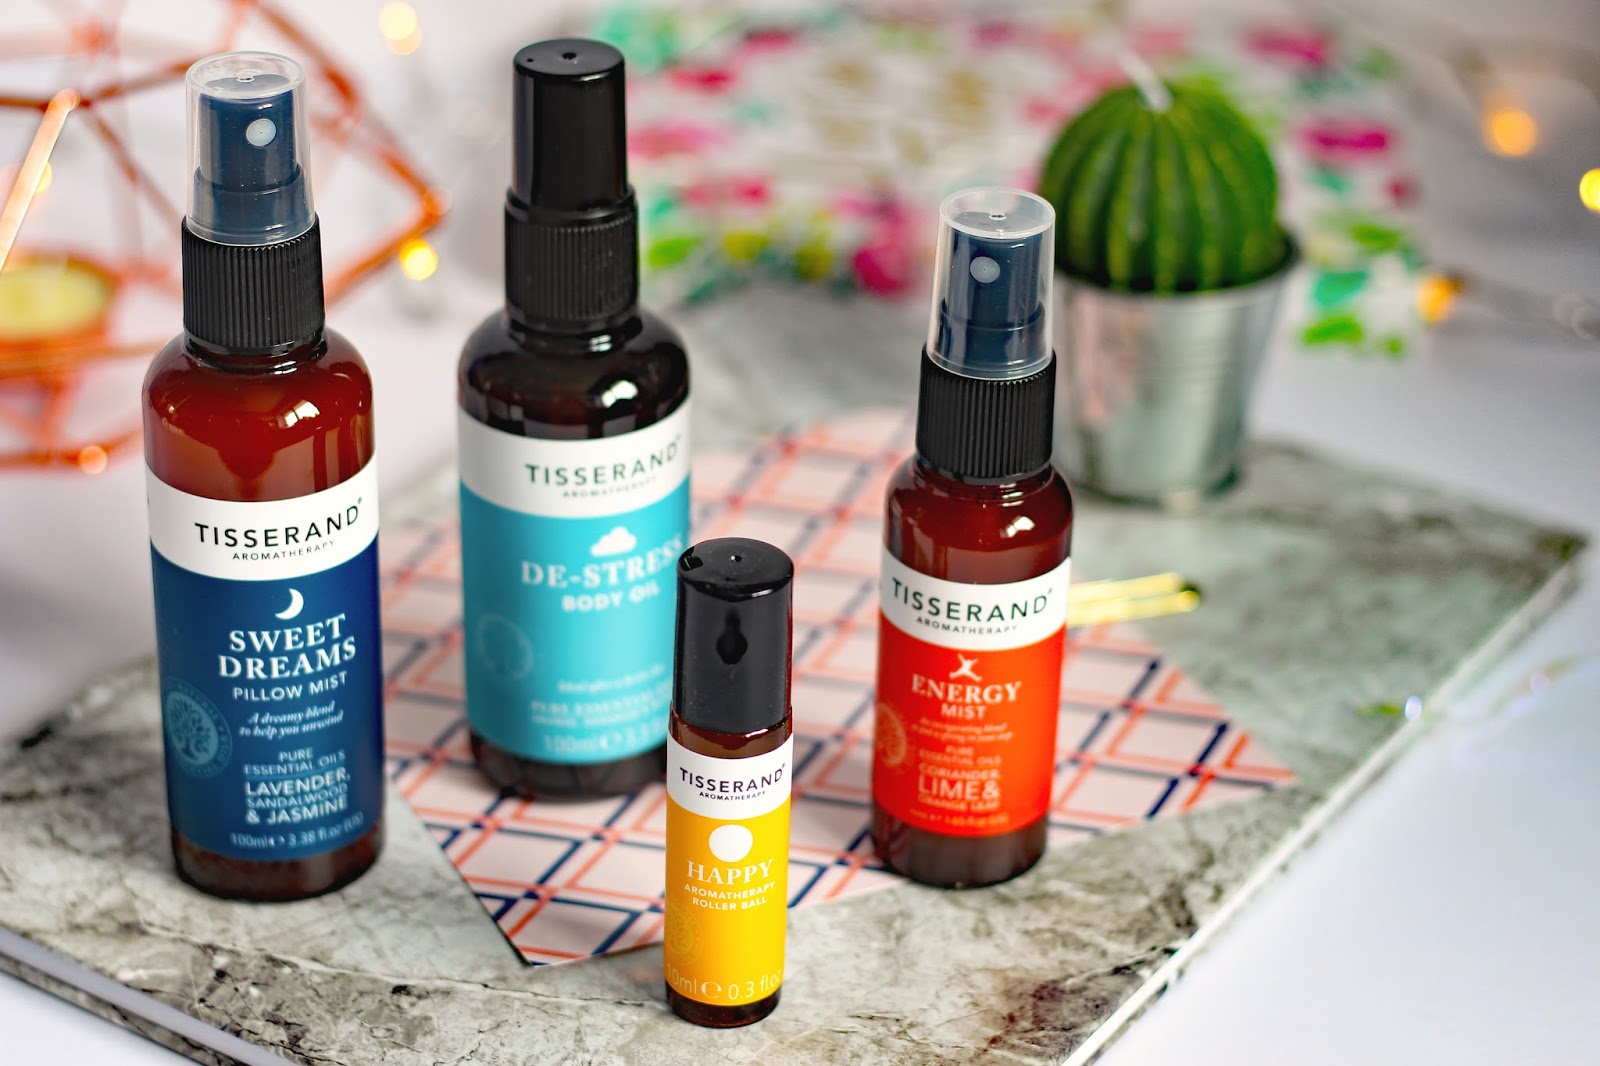 Aroma-what therapy? | Natural Ways To Improve Your Mental Health depression anxiety health wellbeing mental illness sprays mists body oil happiness stress